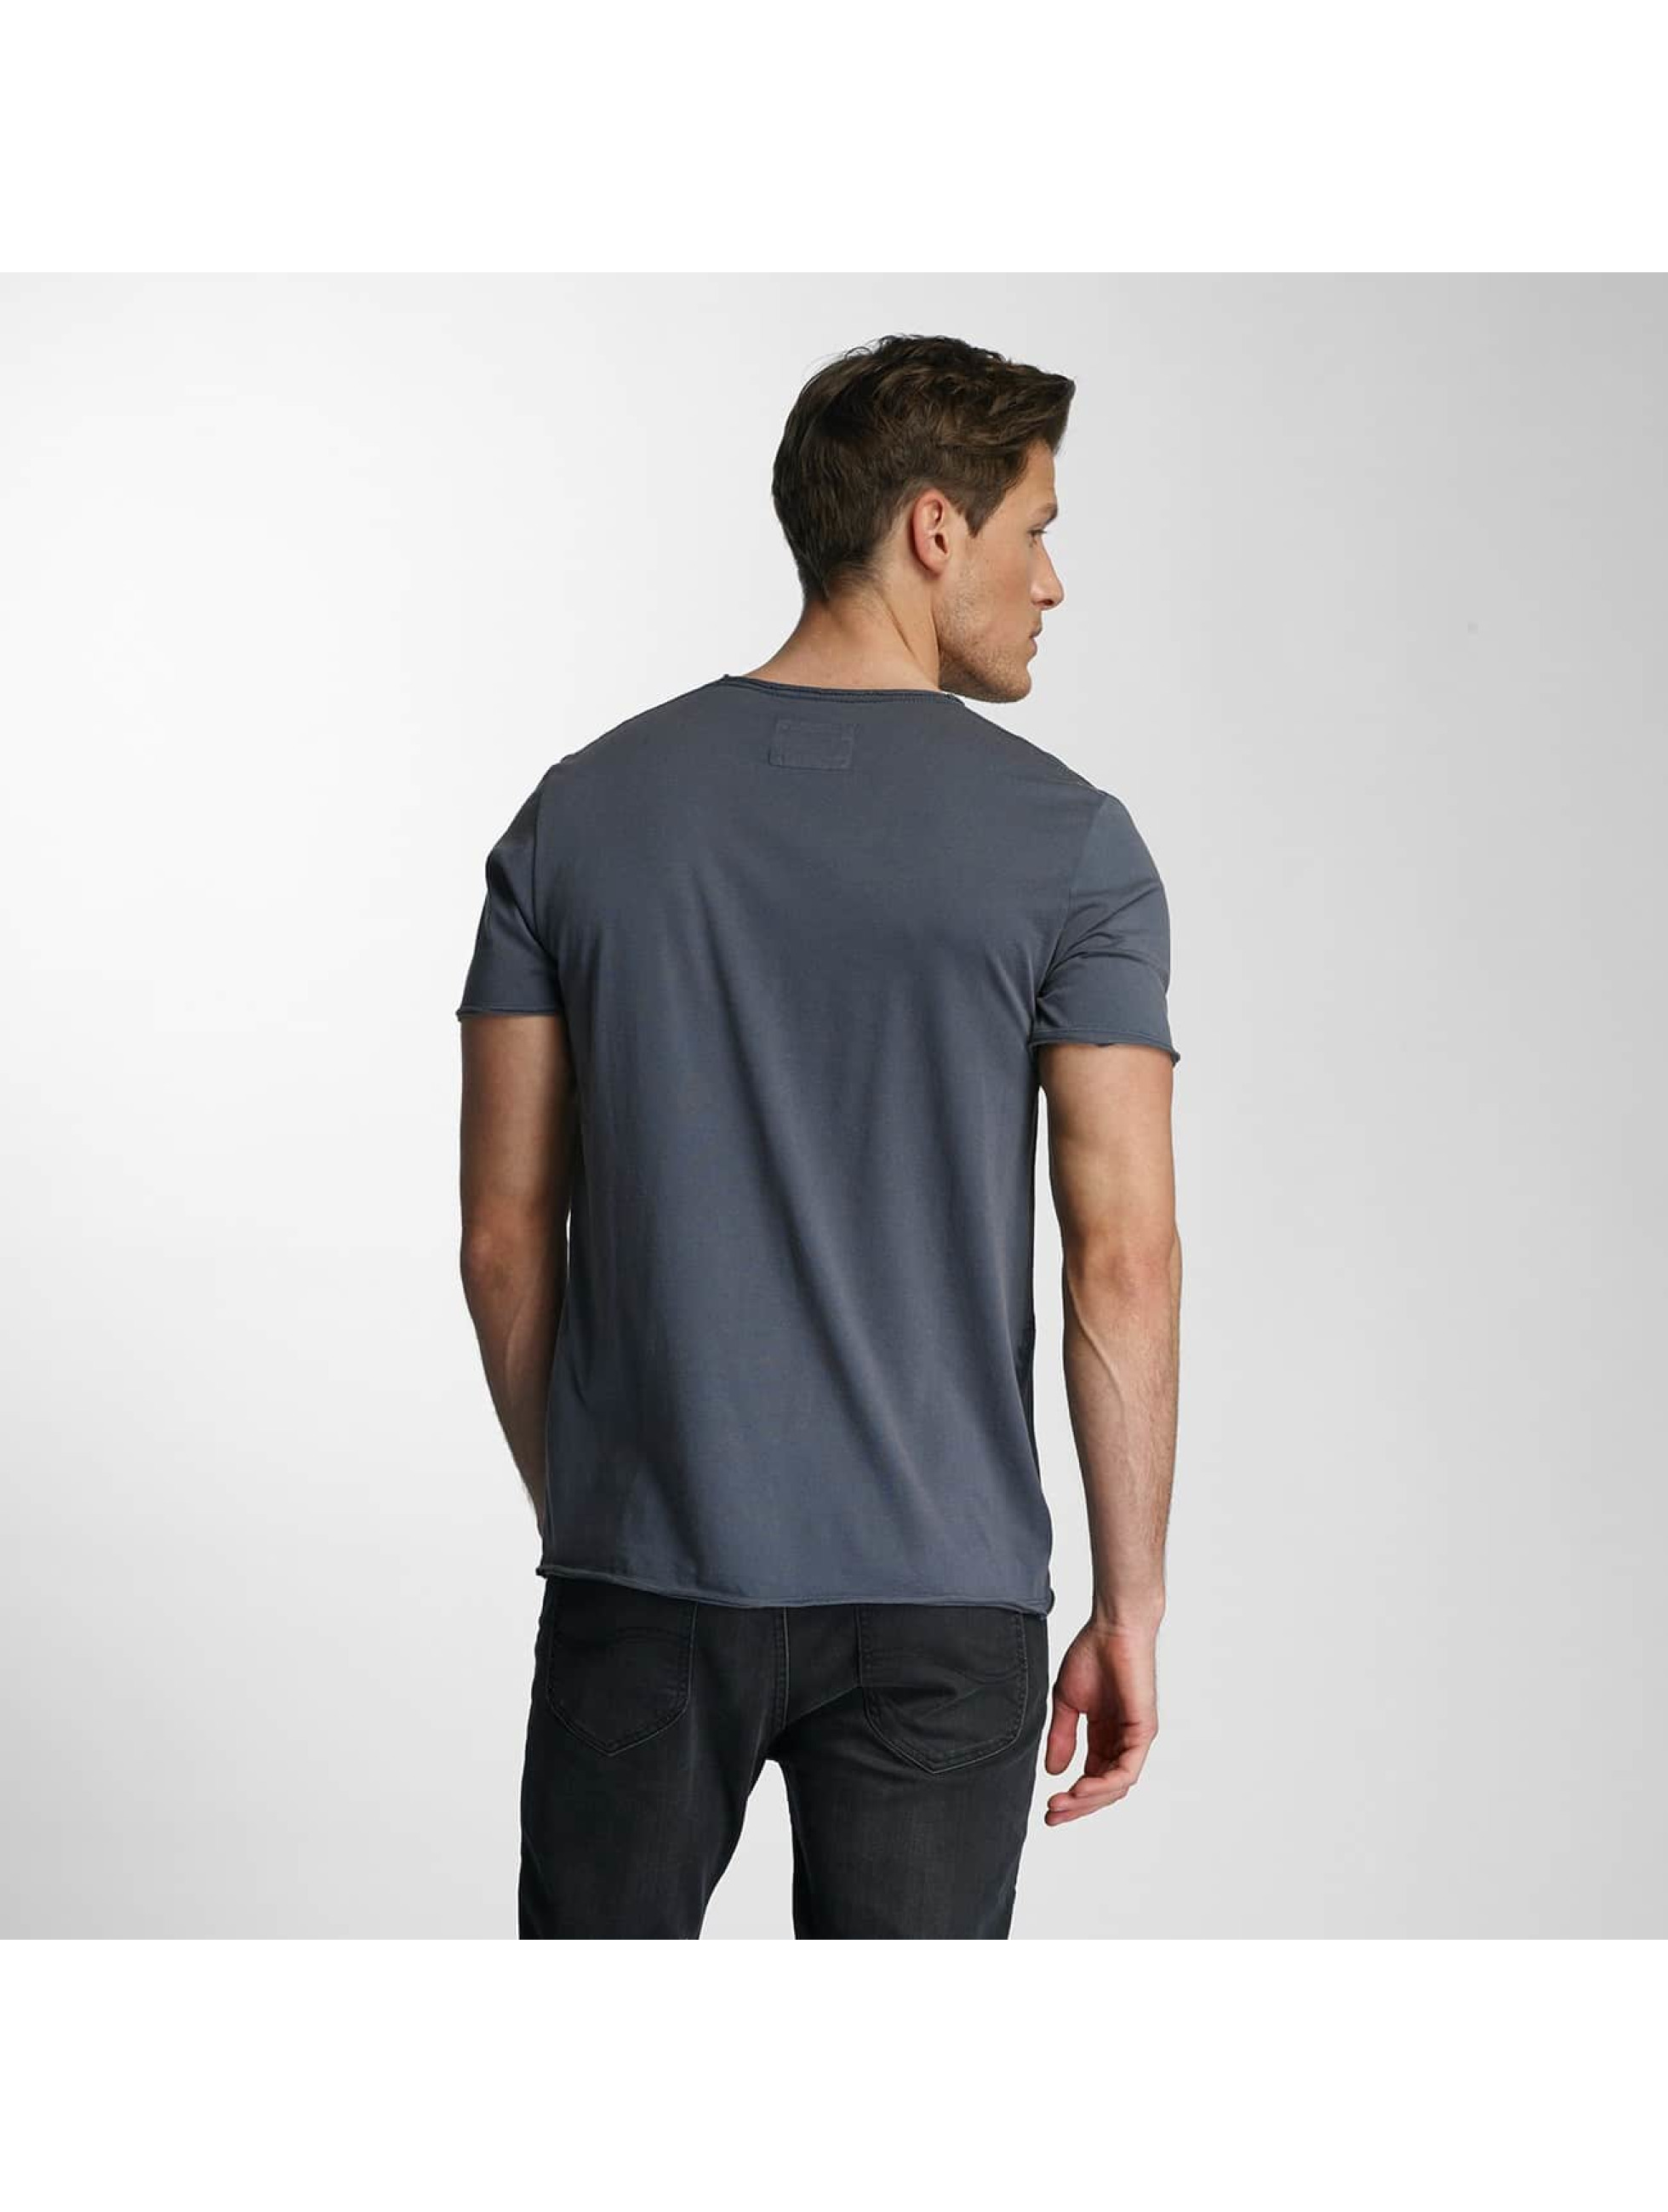 O'NEILL T-Shirt LM The Wolf blue